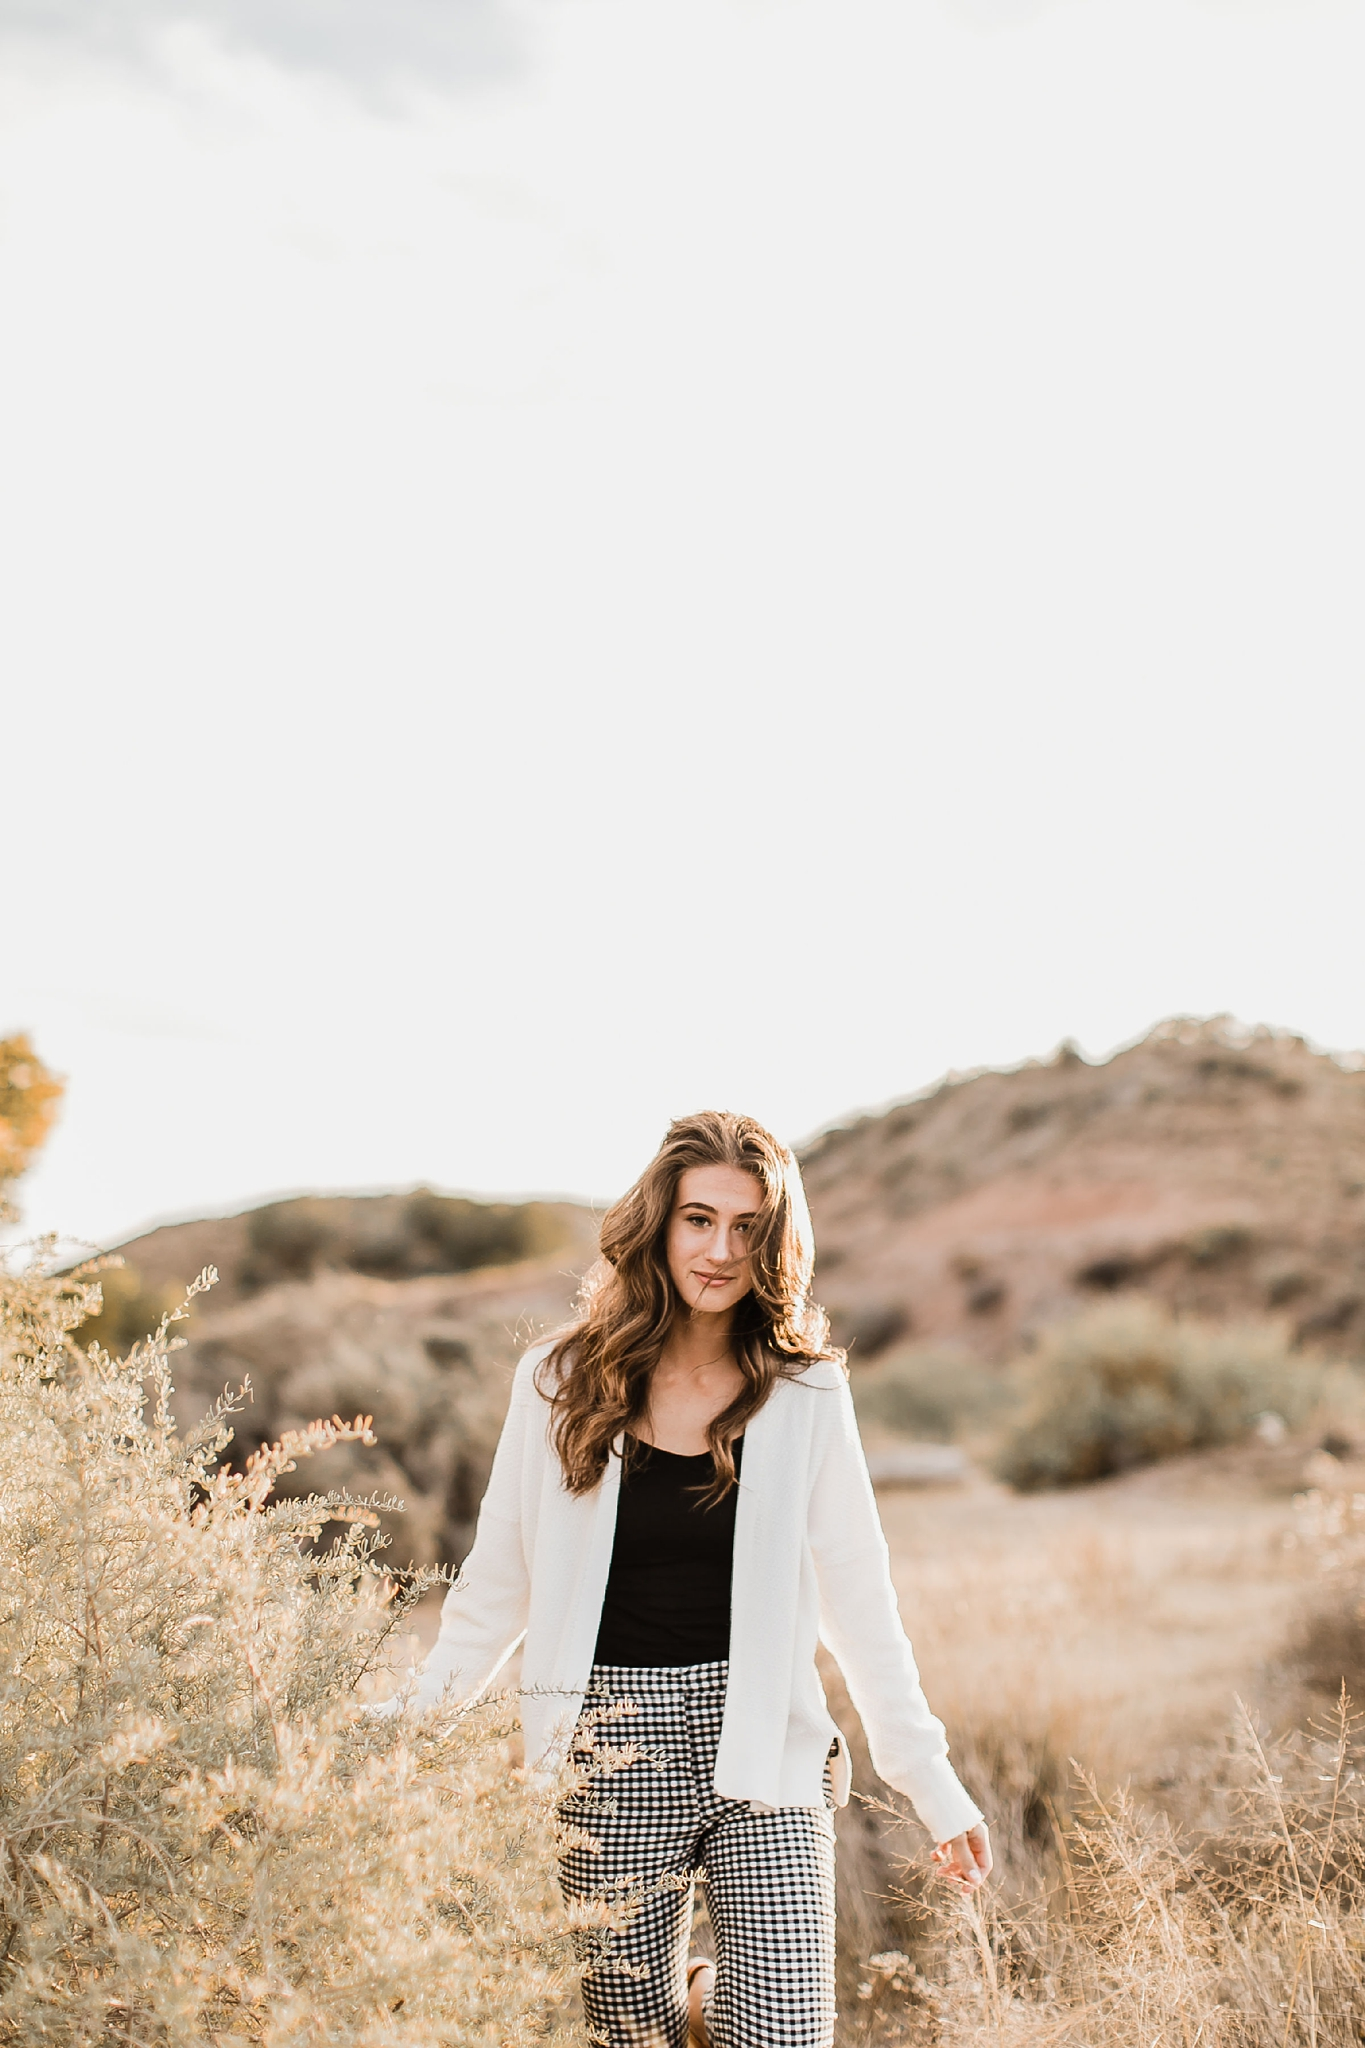 Alicia+lucia+photography+-+albuquerque+wedding+photographer+-+santa+fe+wedding+photography+-+new+mexico+wedding+photographer+-+senior+session+-+new+mexico+senior+session+southwest+senior+session_0008.jpg